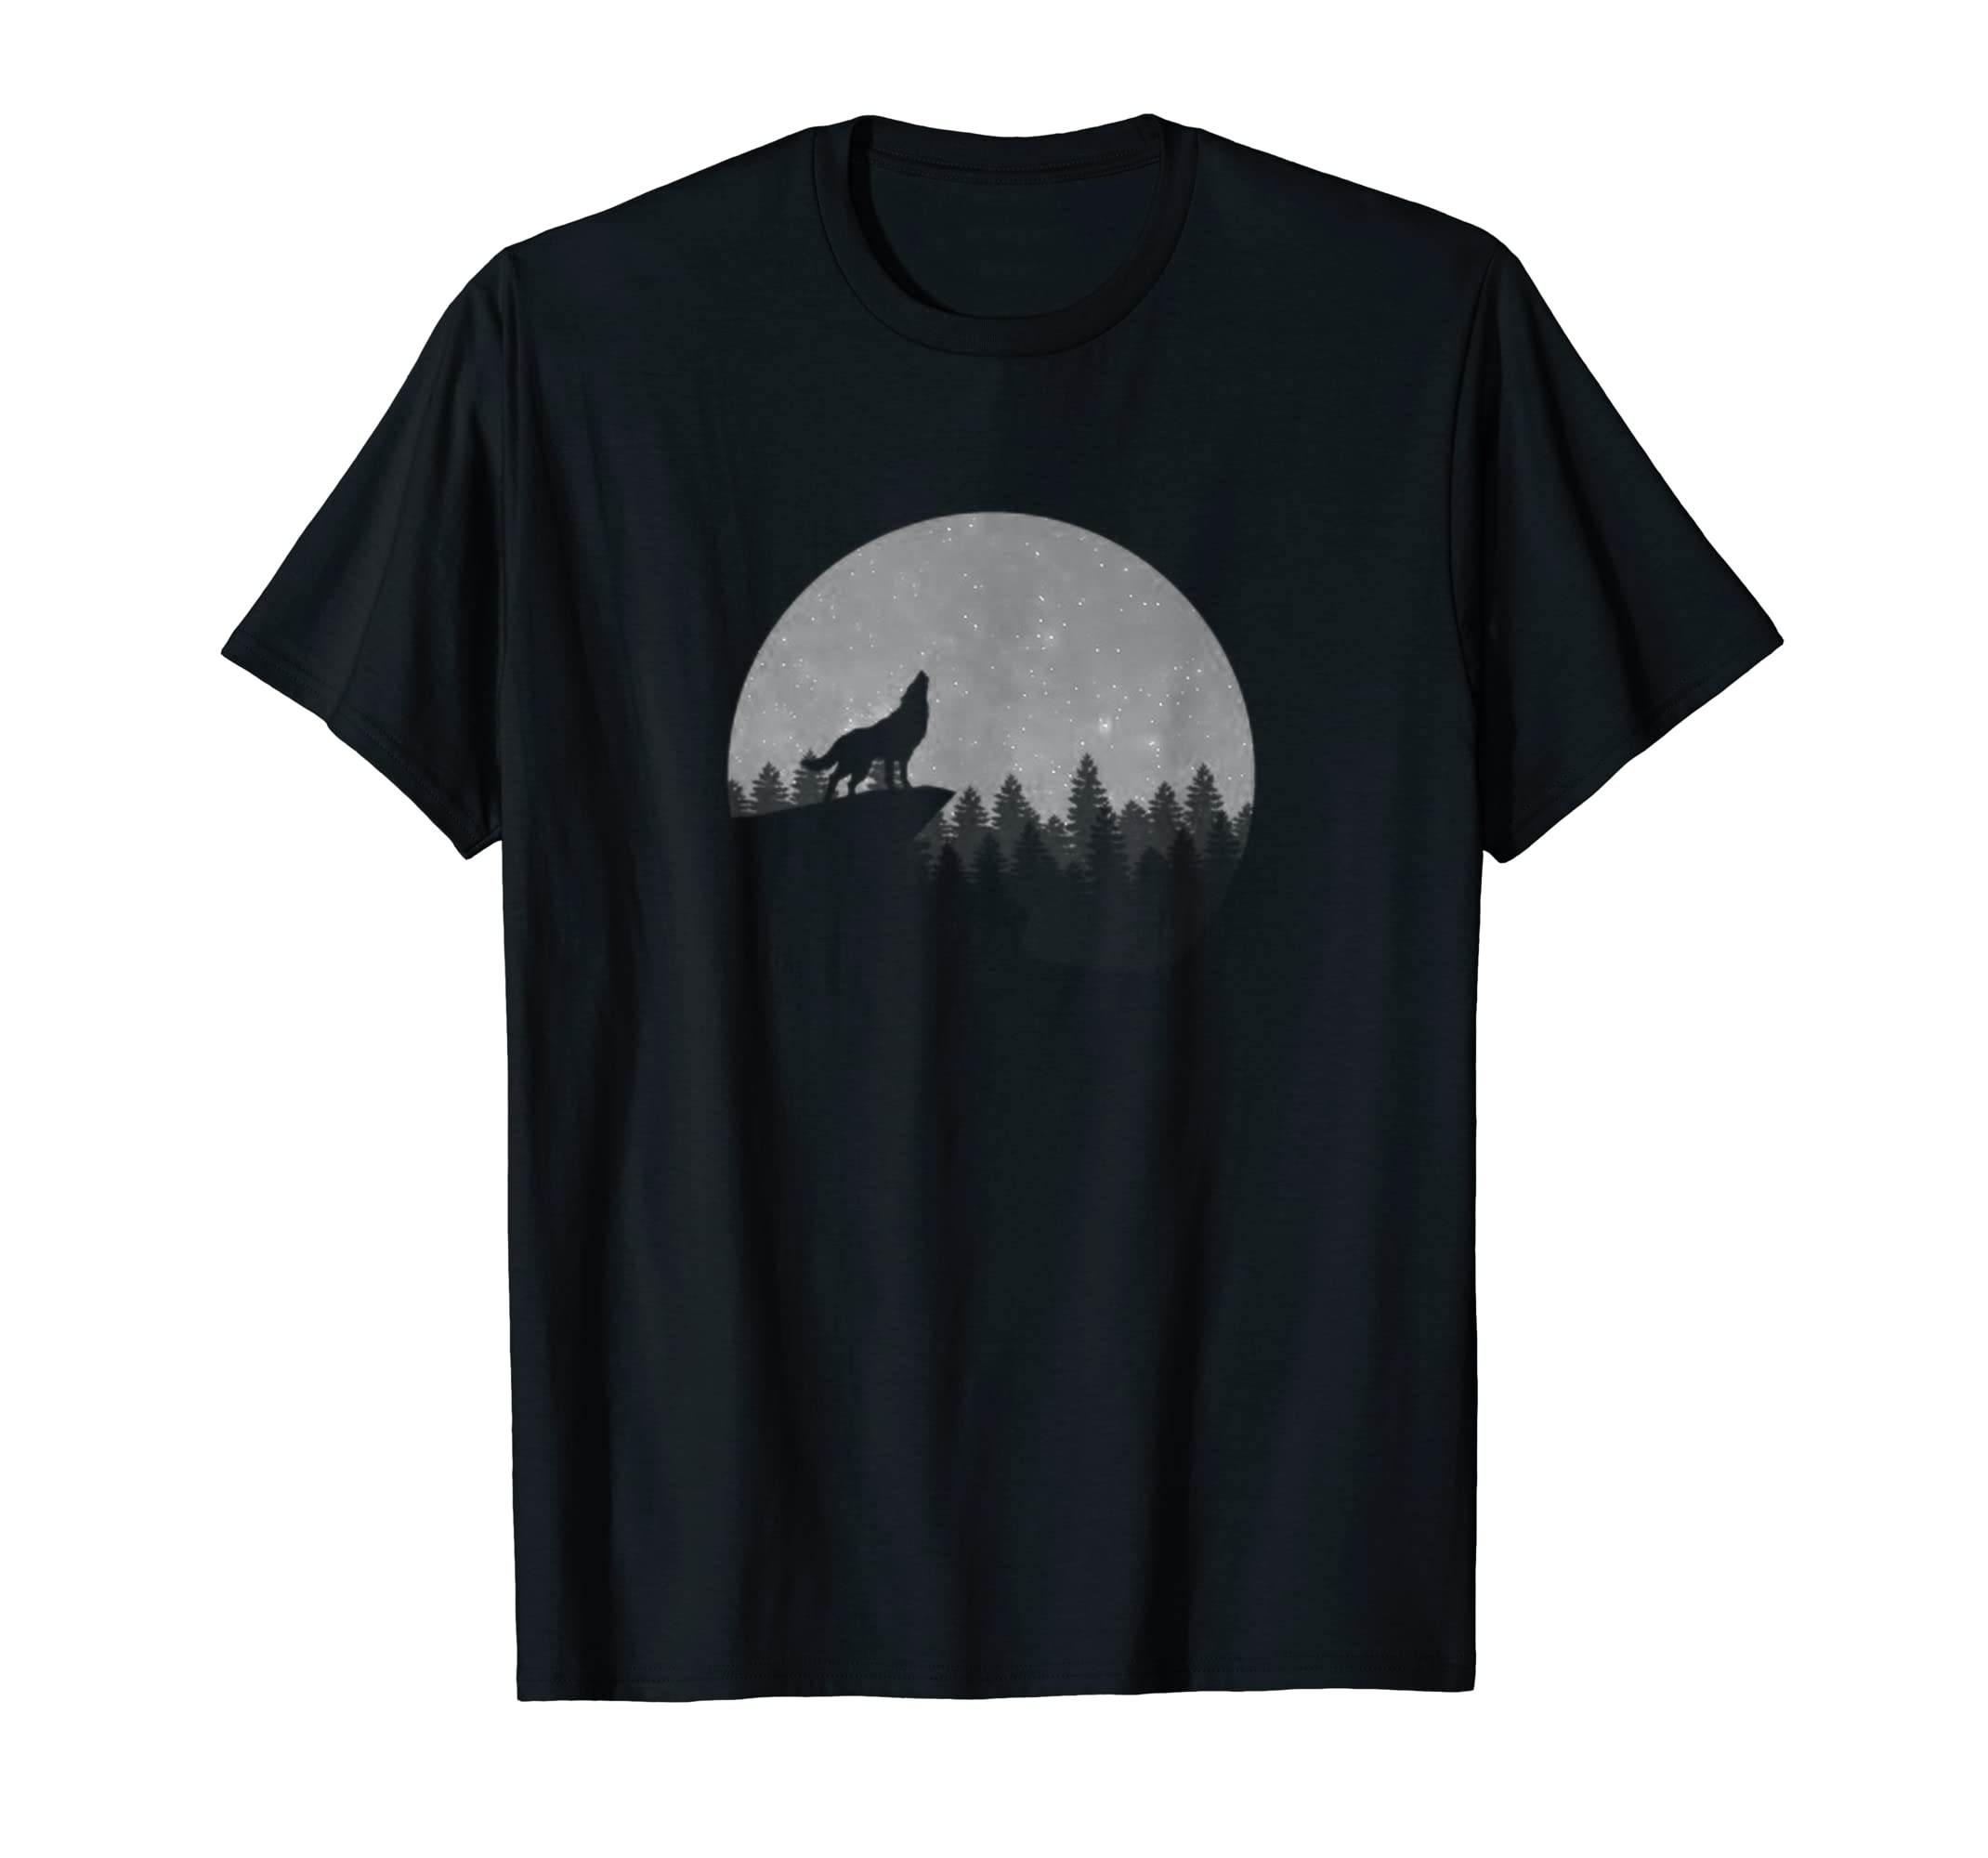 Wolf in Nature & Moon TShirt Cool Camping Gift for Campers T-Shirt-Men's T-Shirt-Black